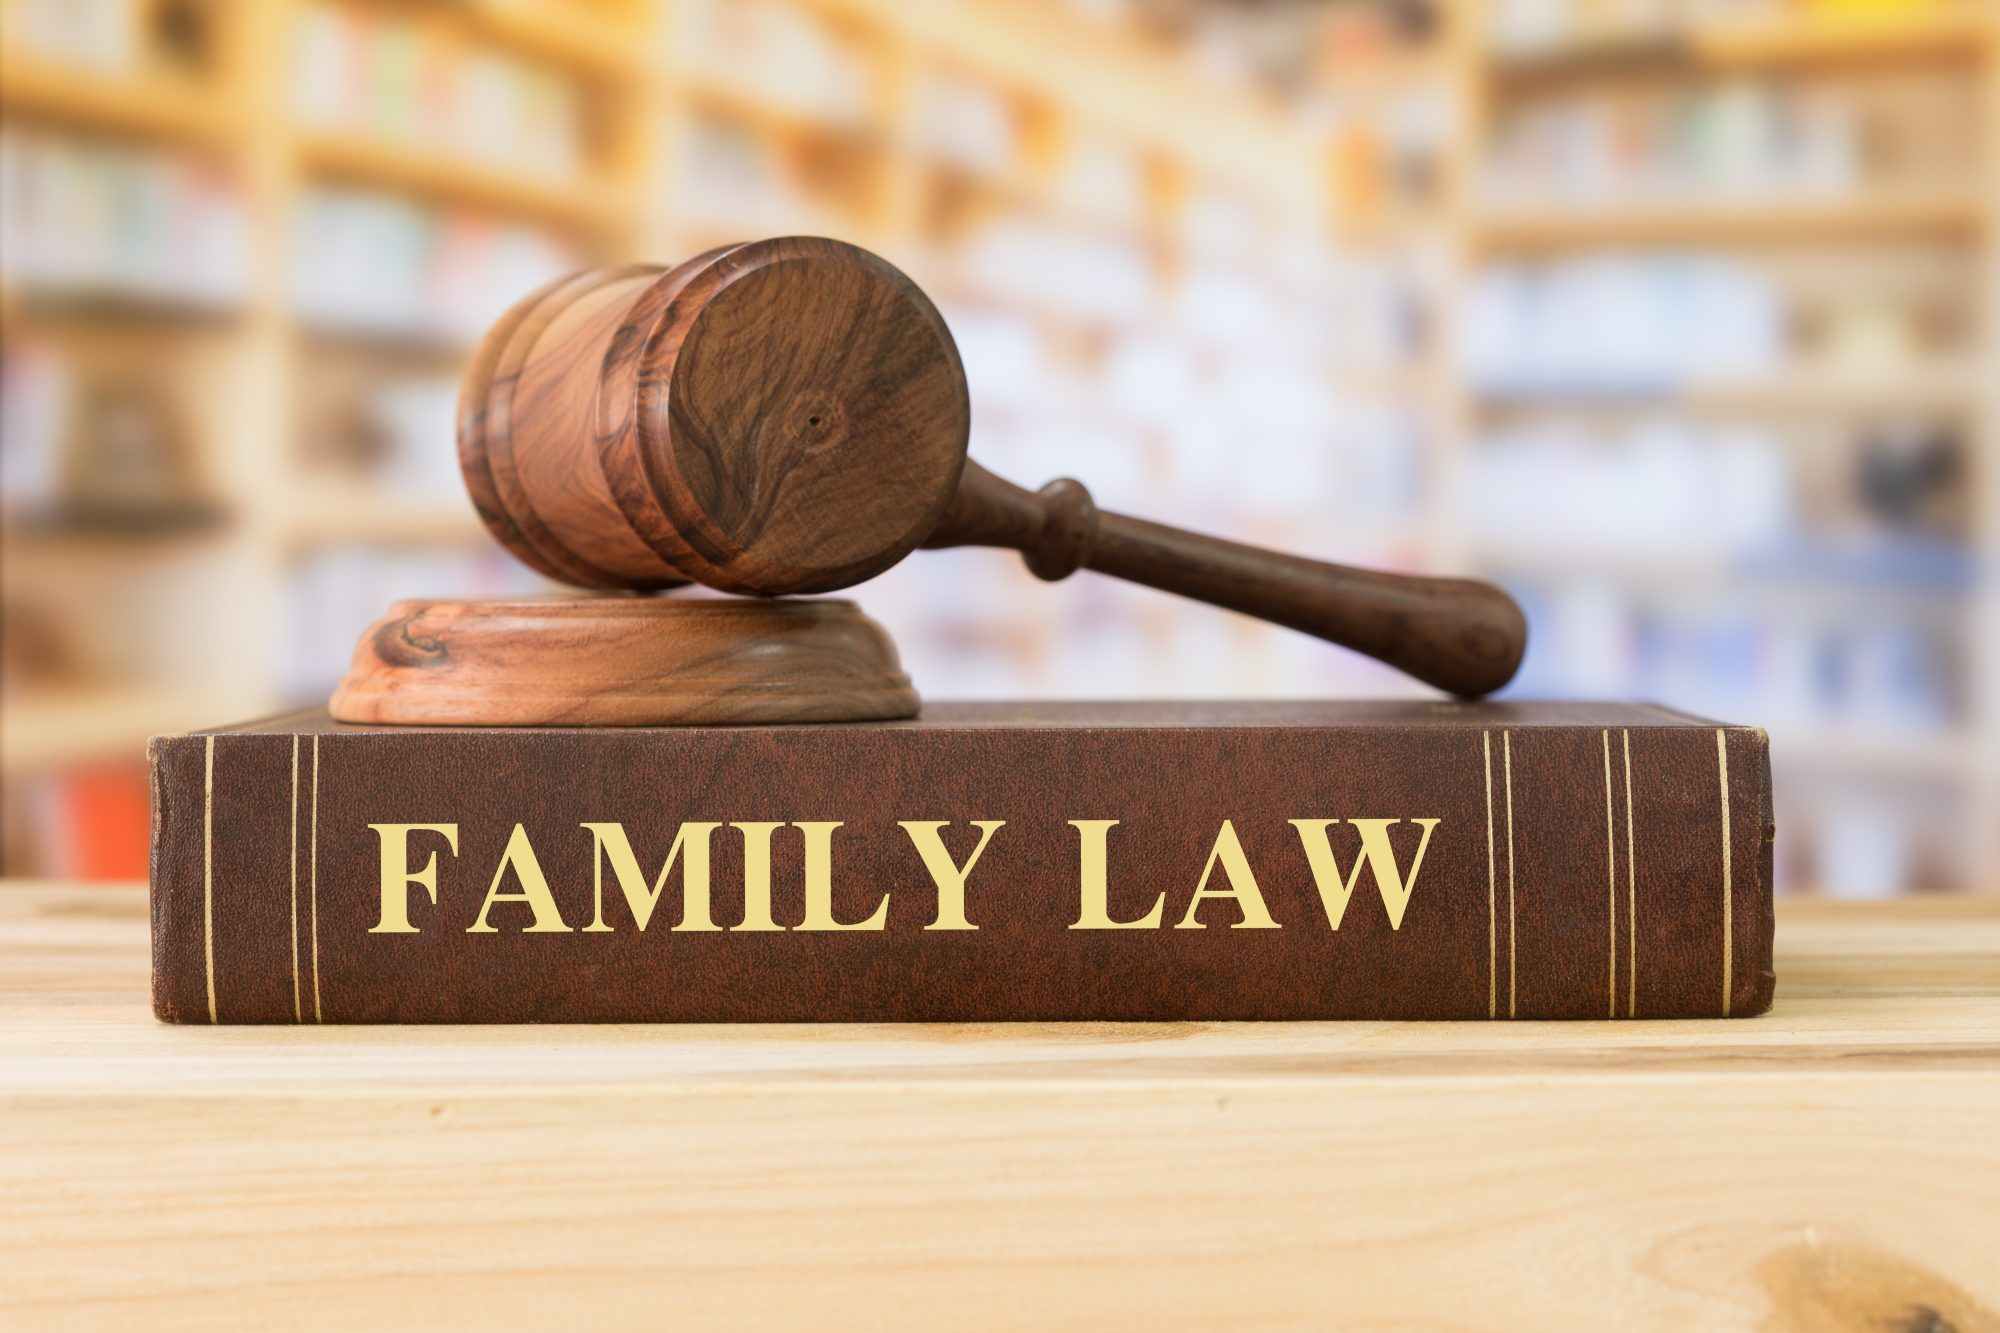 Things to Keep In Mind While Choosing a Divorce Attorney